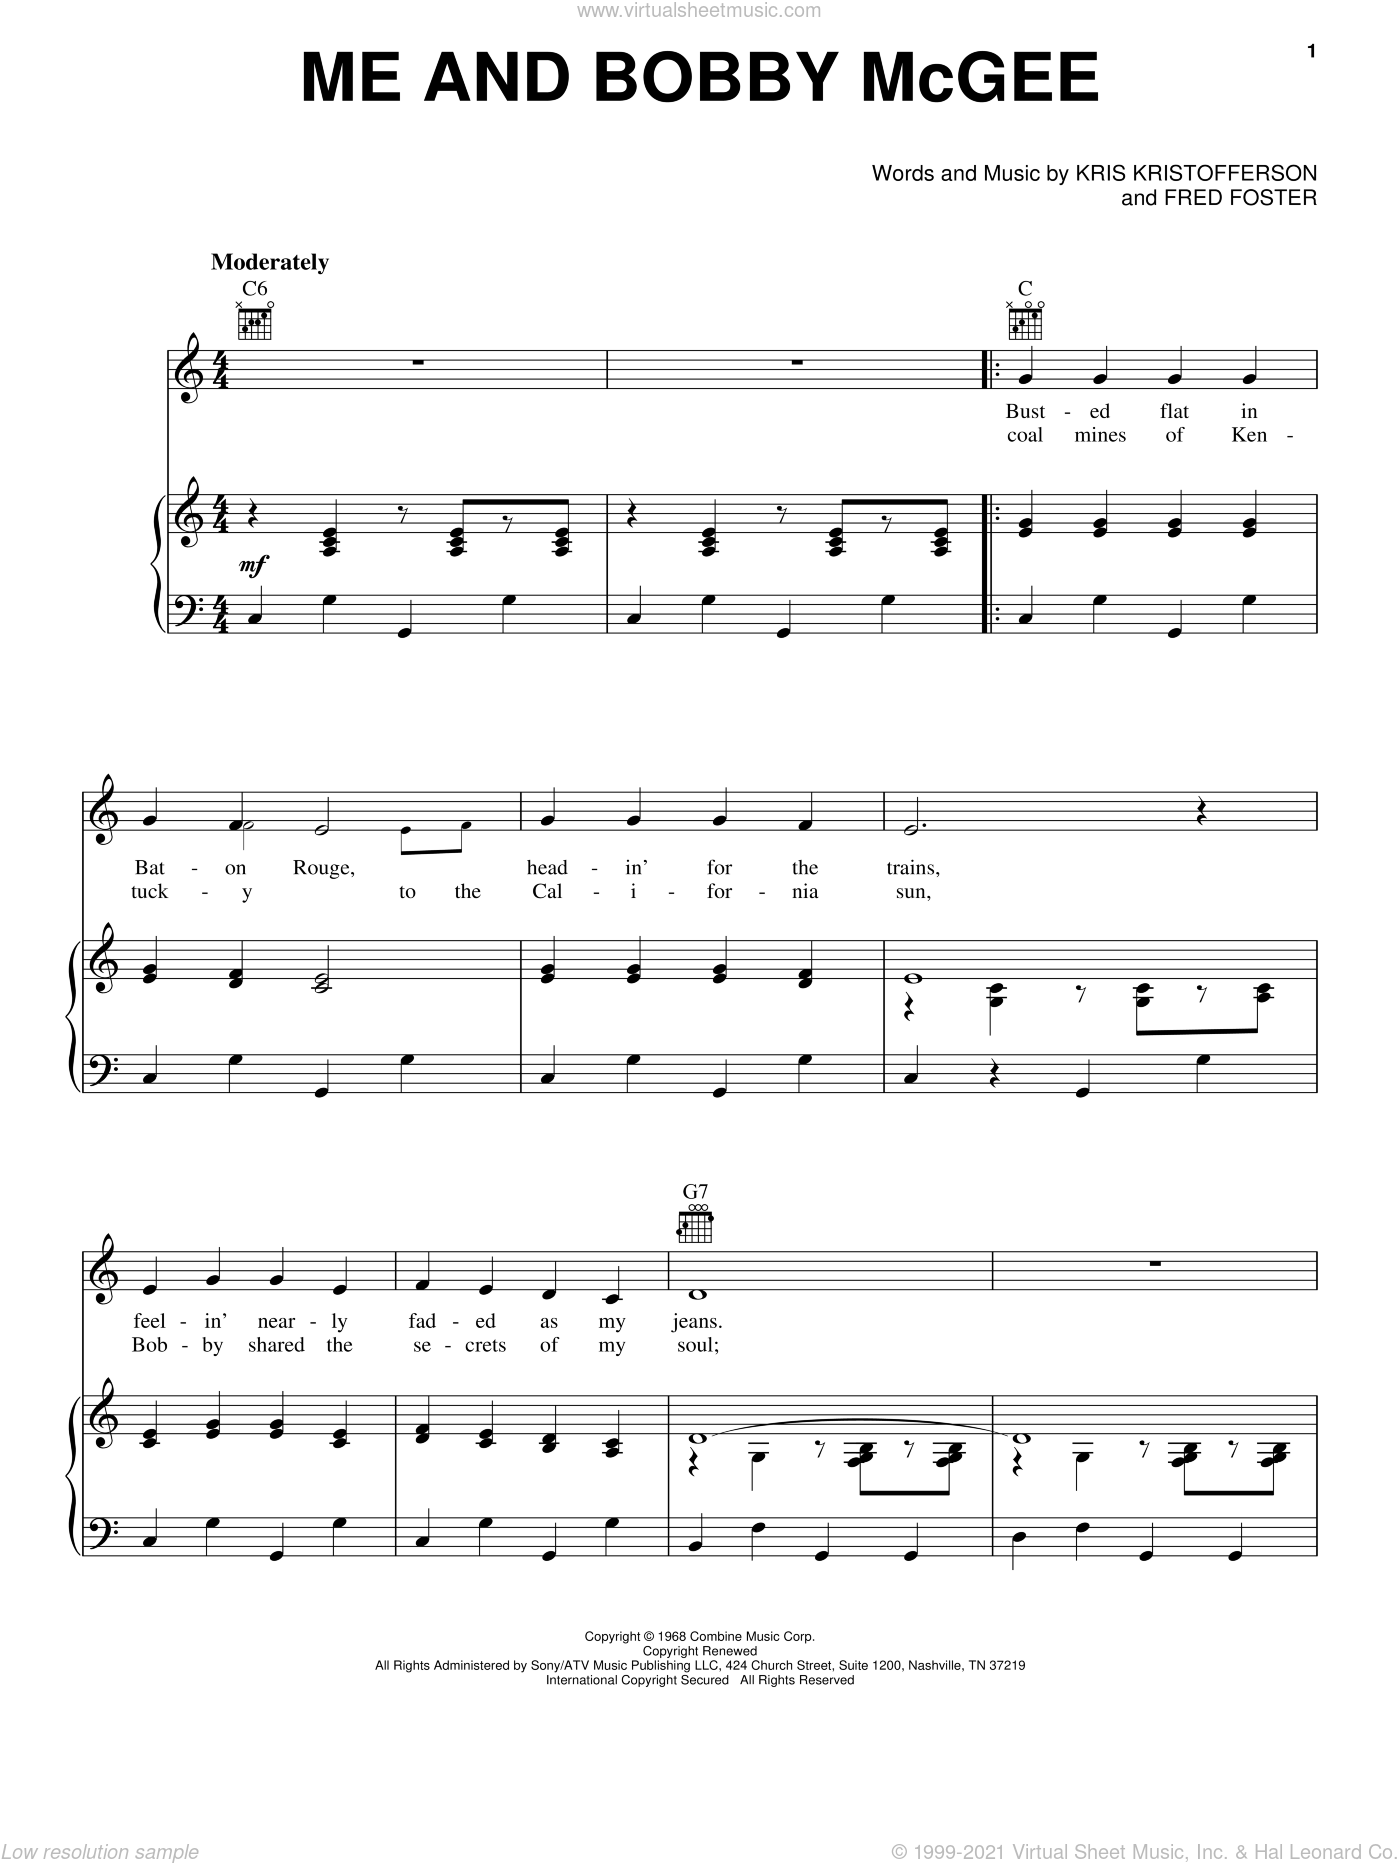 Me And Bobby McGee sheet music for voice, piano or guitar by Janis Joplin, Roger Miller, Fred Foster and Kris Kristofferson, intermediate